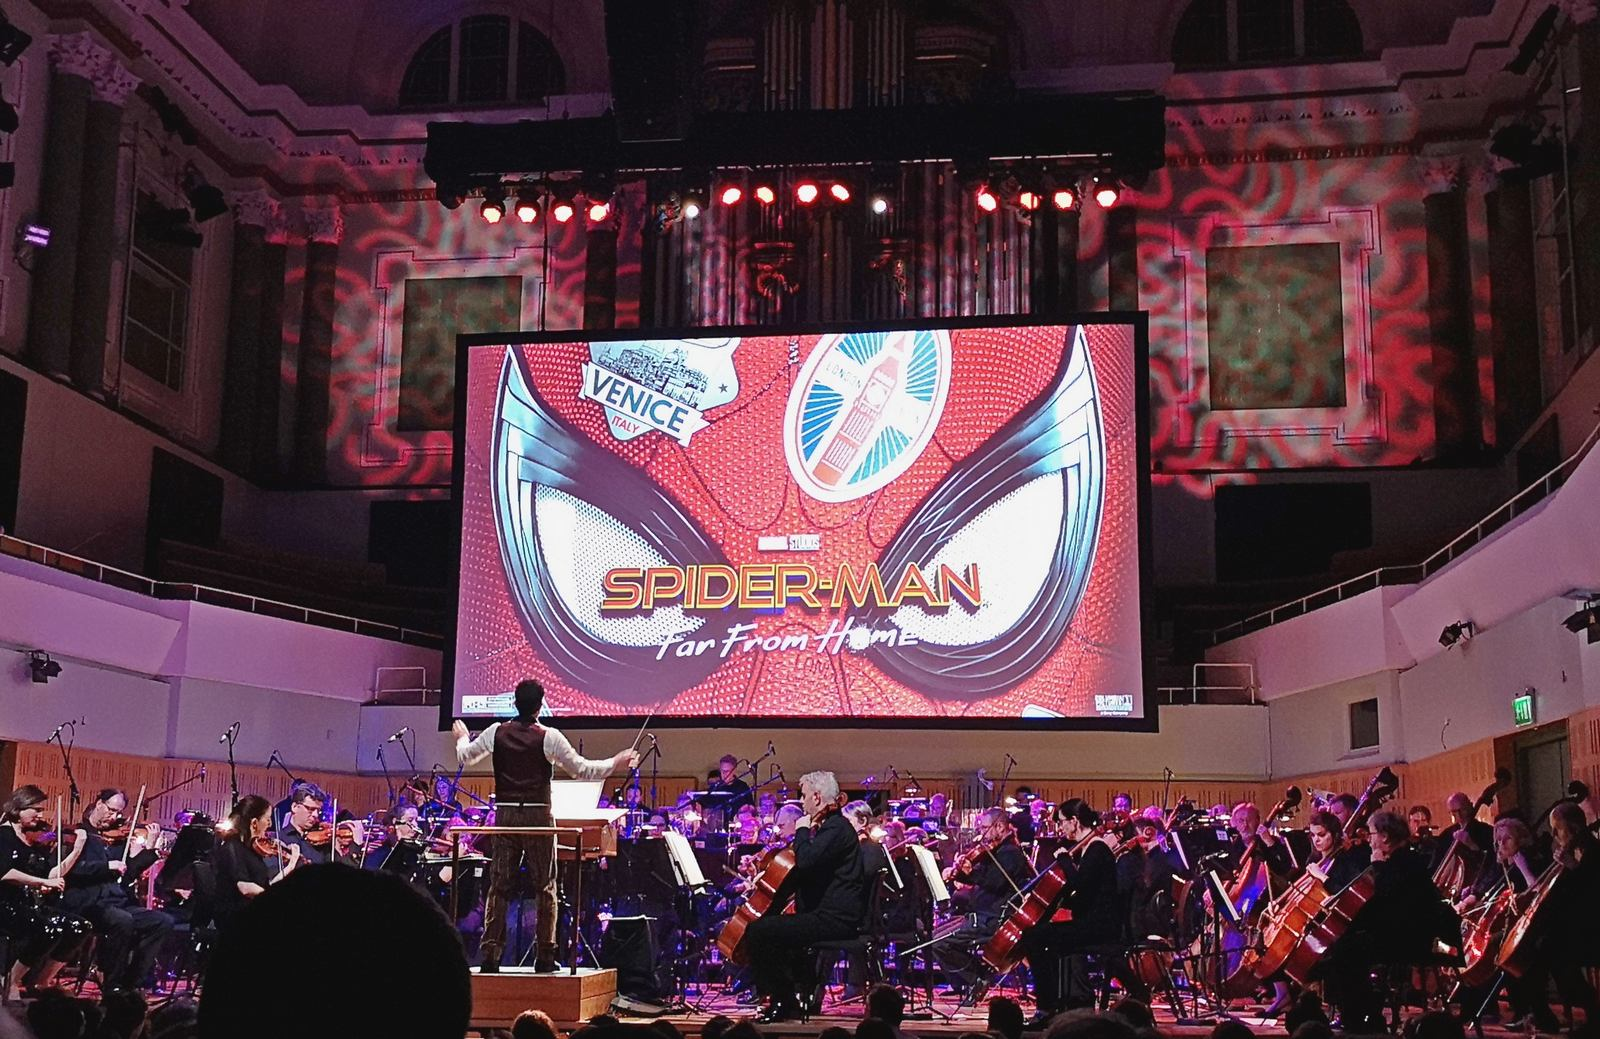 VIDEO: 'Spider-Man: Far From Home' – Suite in concert conducted by Michael Giacchino – SoundTrackFest